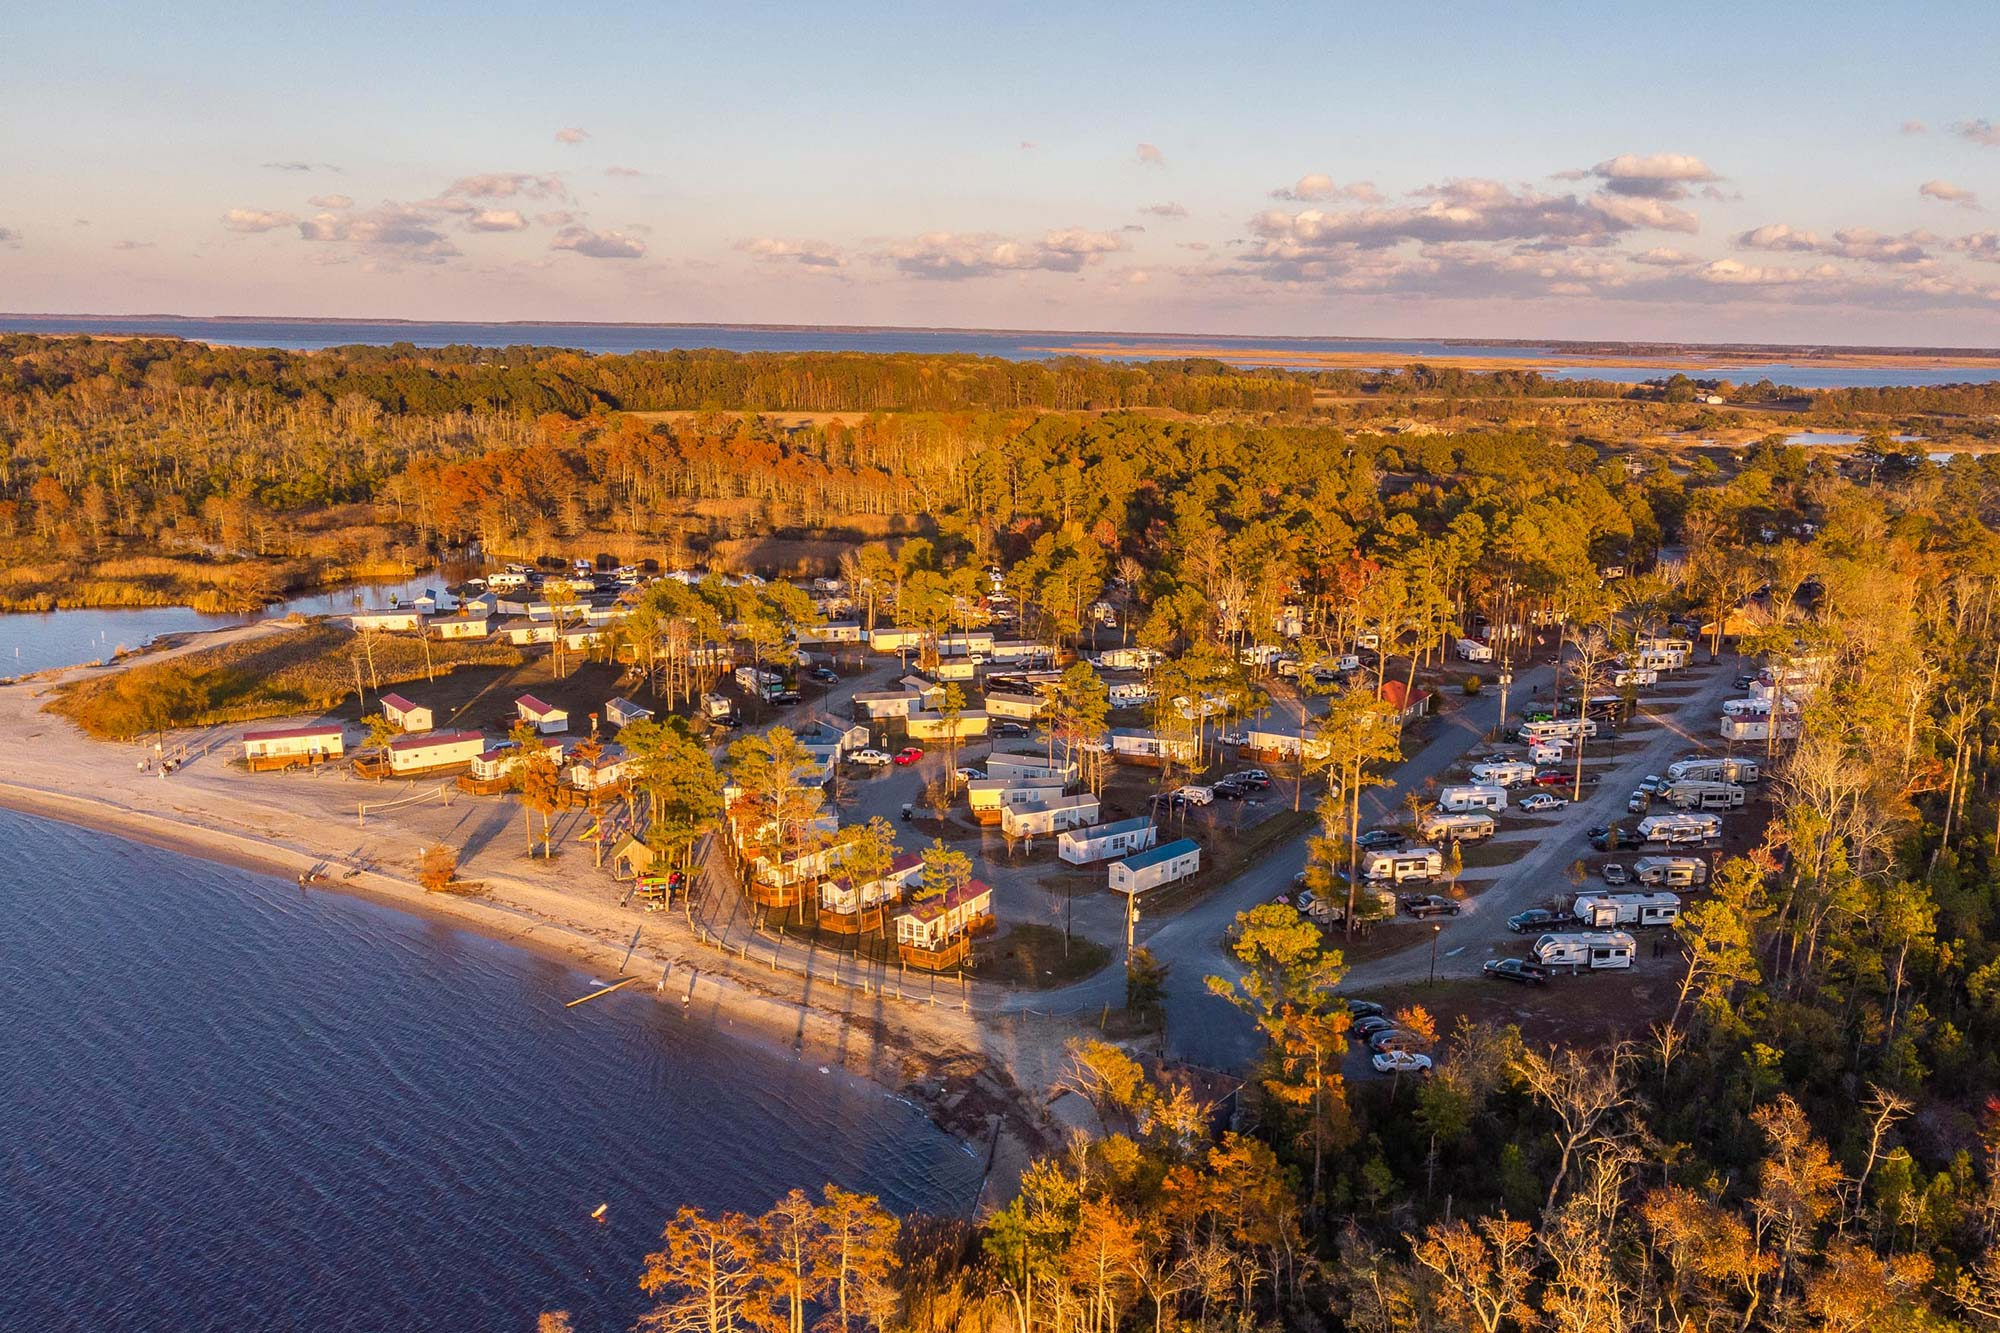 aerial view of North Landing Beach